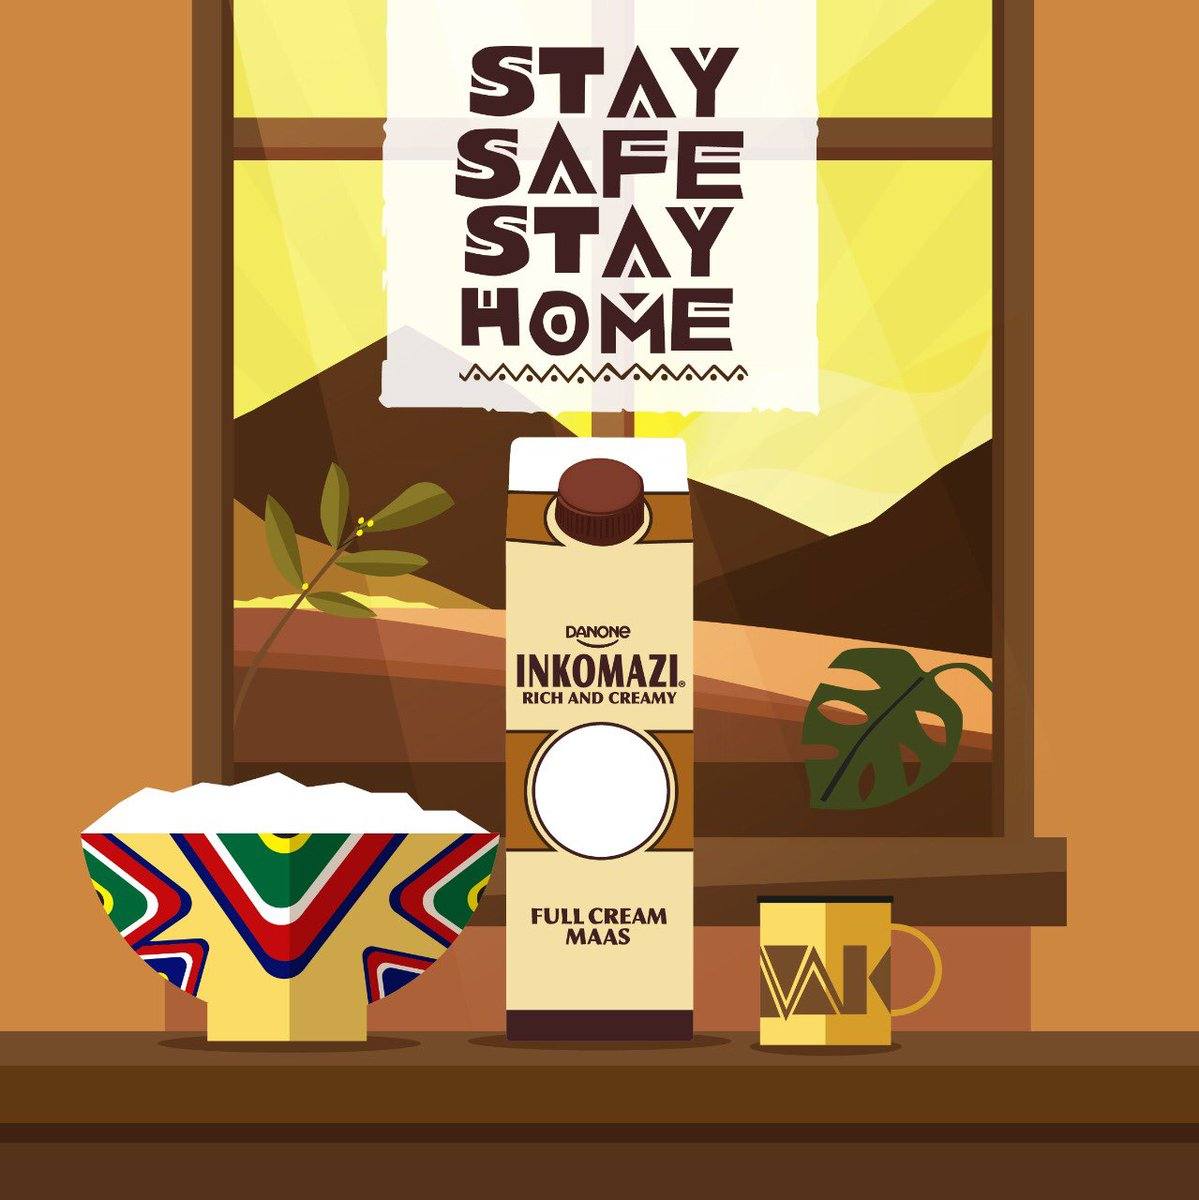 Sisonke even if we are apart. Stay home and stay safe, for this too shall pass. And when it does, the things we love most can be shared and enjoyed together again. #kuzolunga #gotlaloka